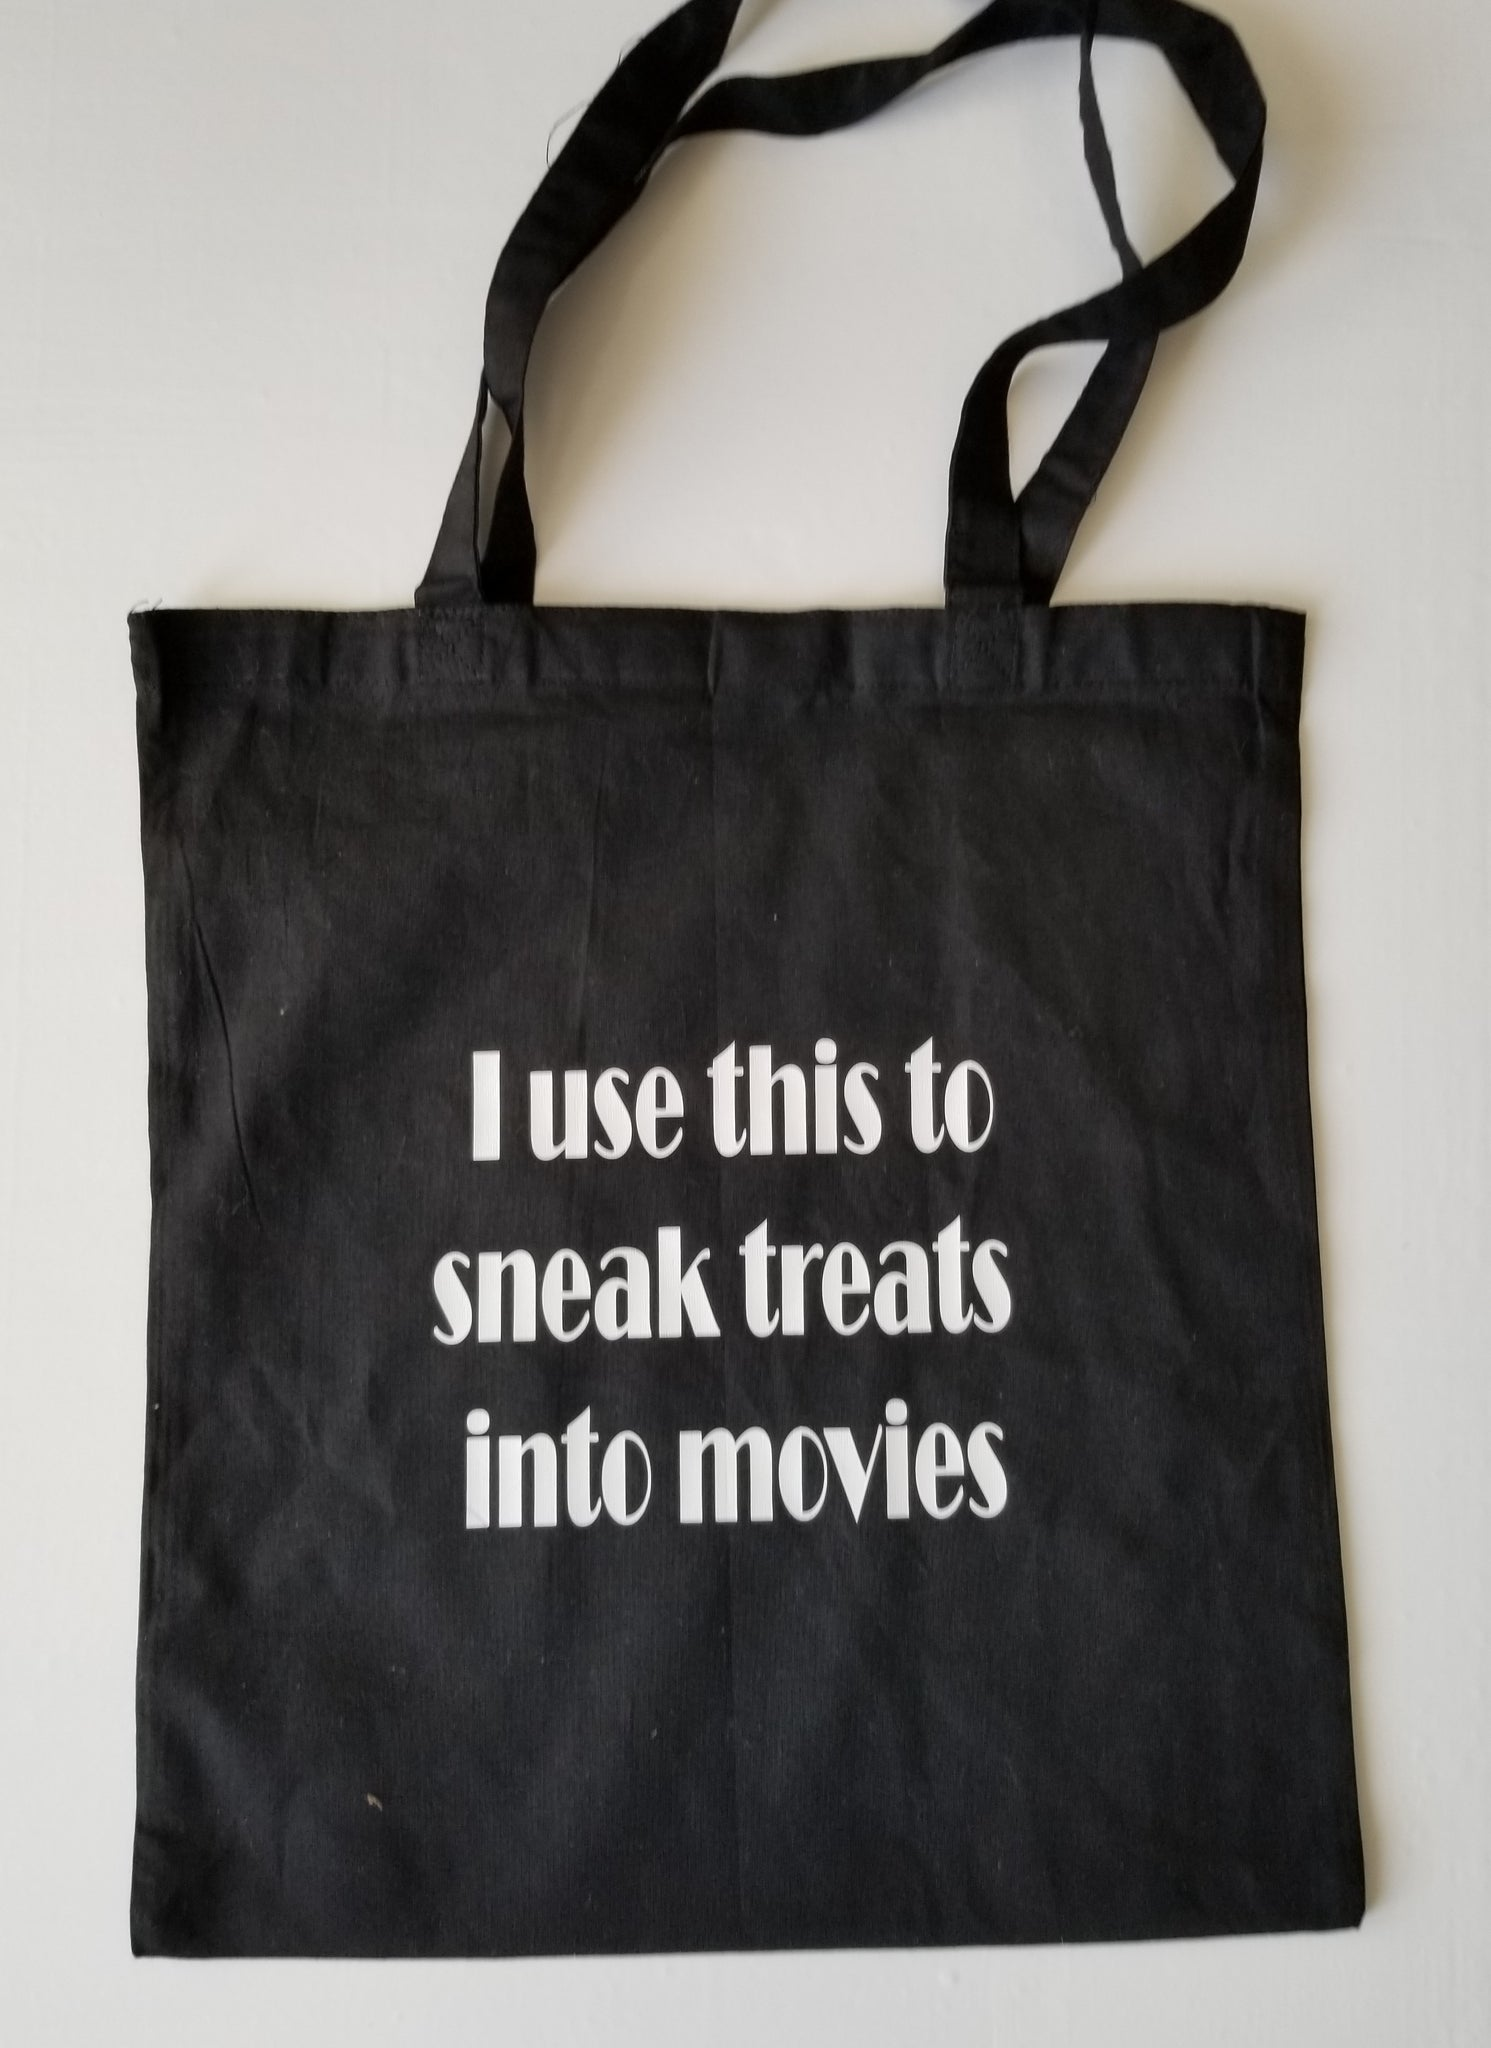 I Use This to Sneak Treats Tote Bag